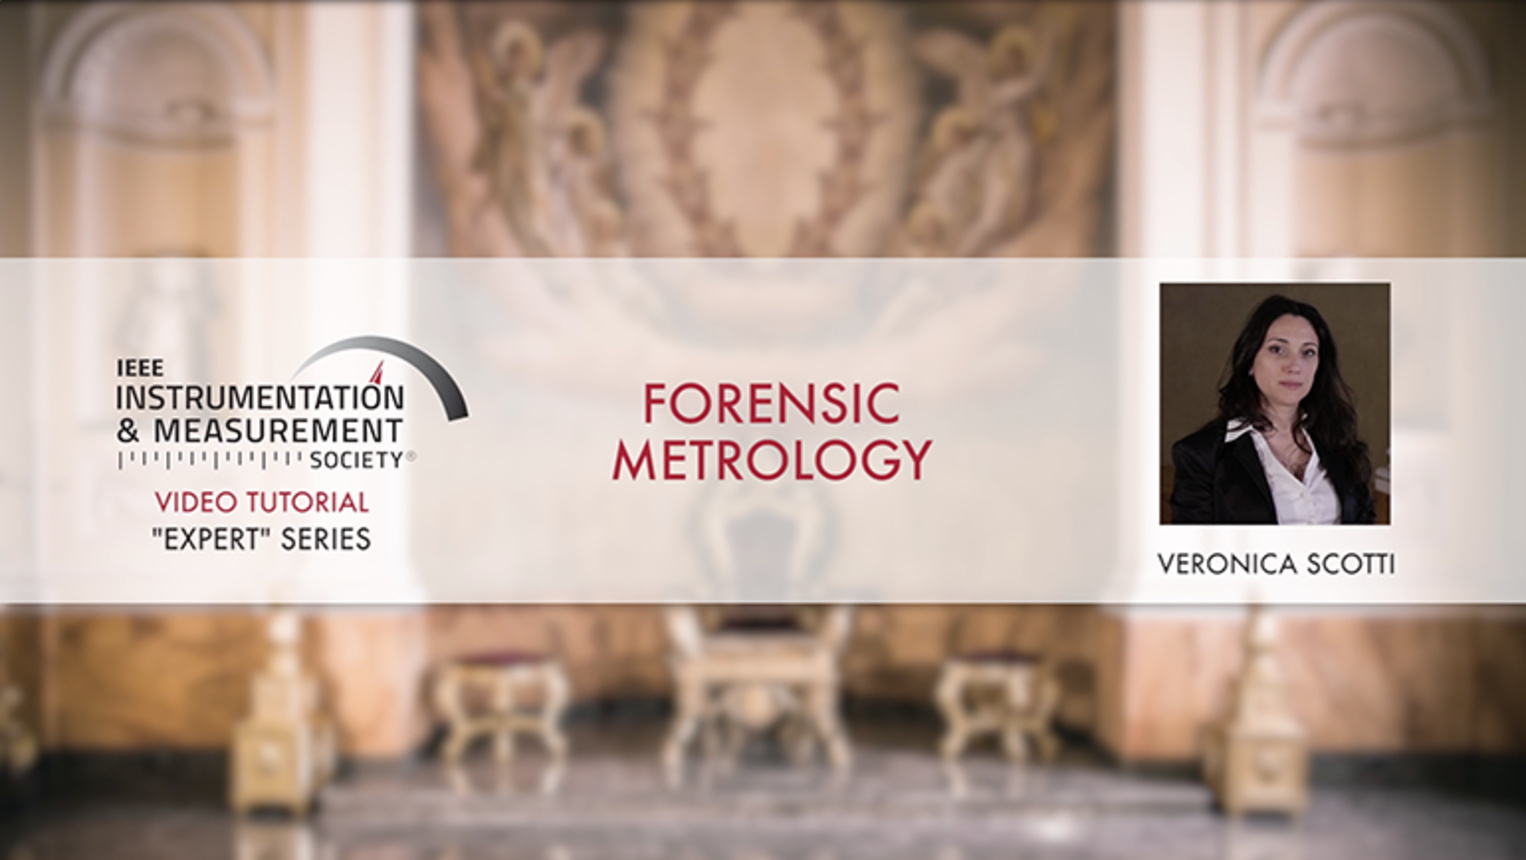 Forensic Metrology: Introduction for Use in Law/Justice - Tutorial by Veronica Scotti